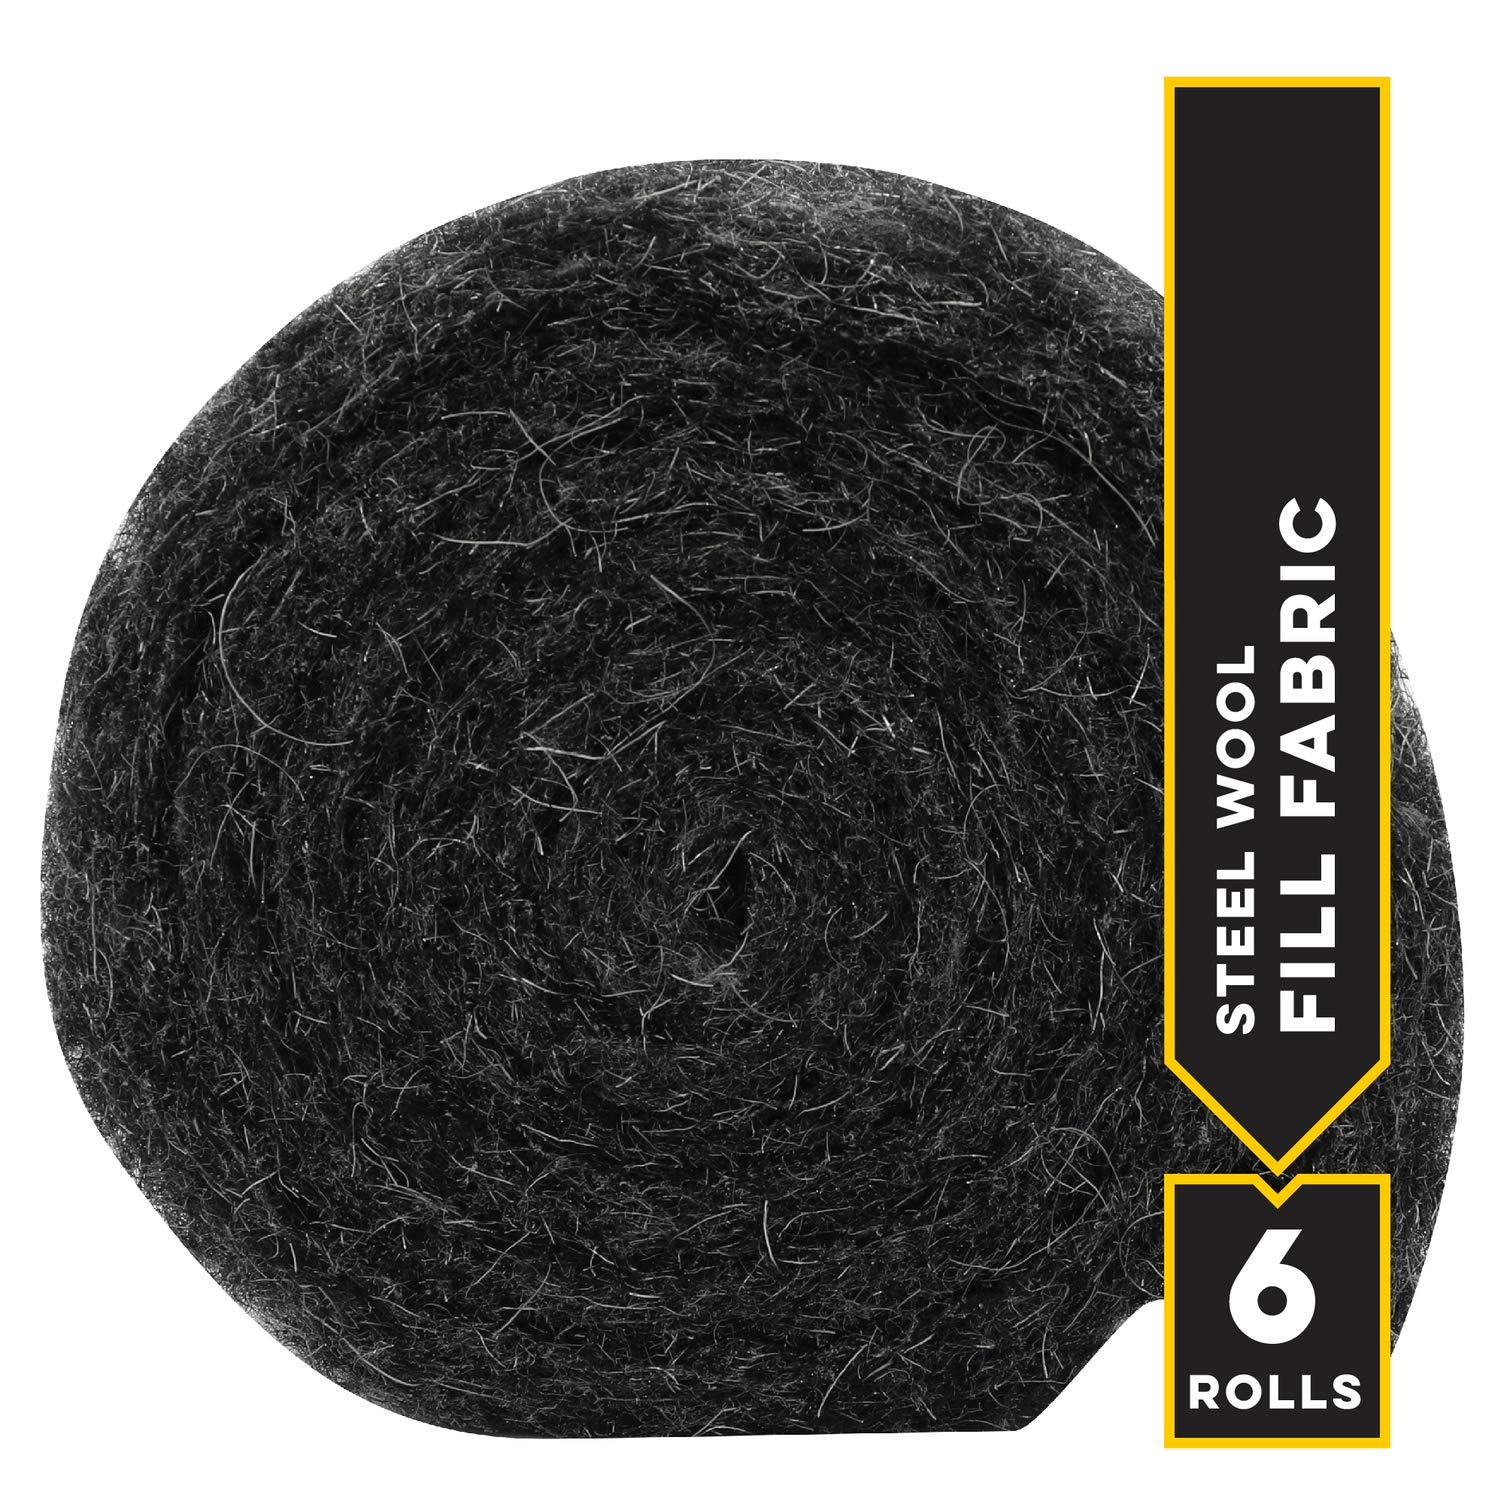 Xcluder Rodent Control Steel Wool Fill Fabric, 6 Rolls by Xcluder